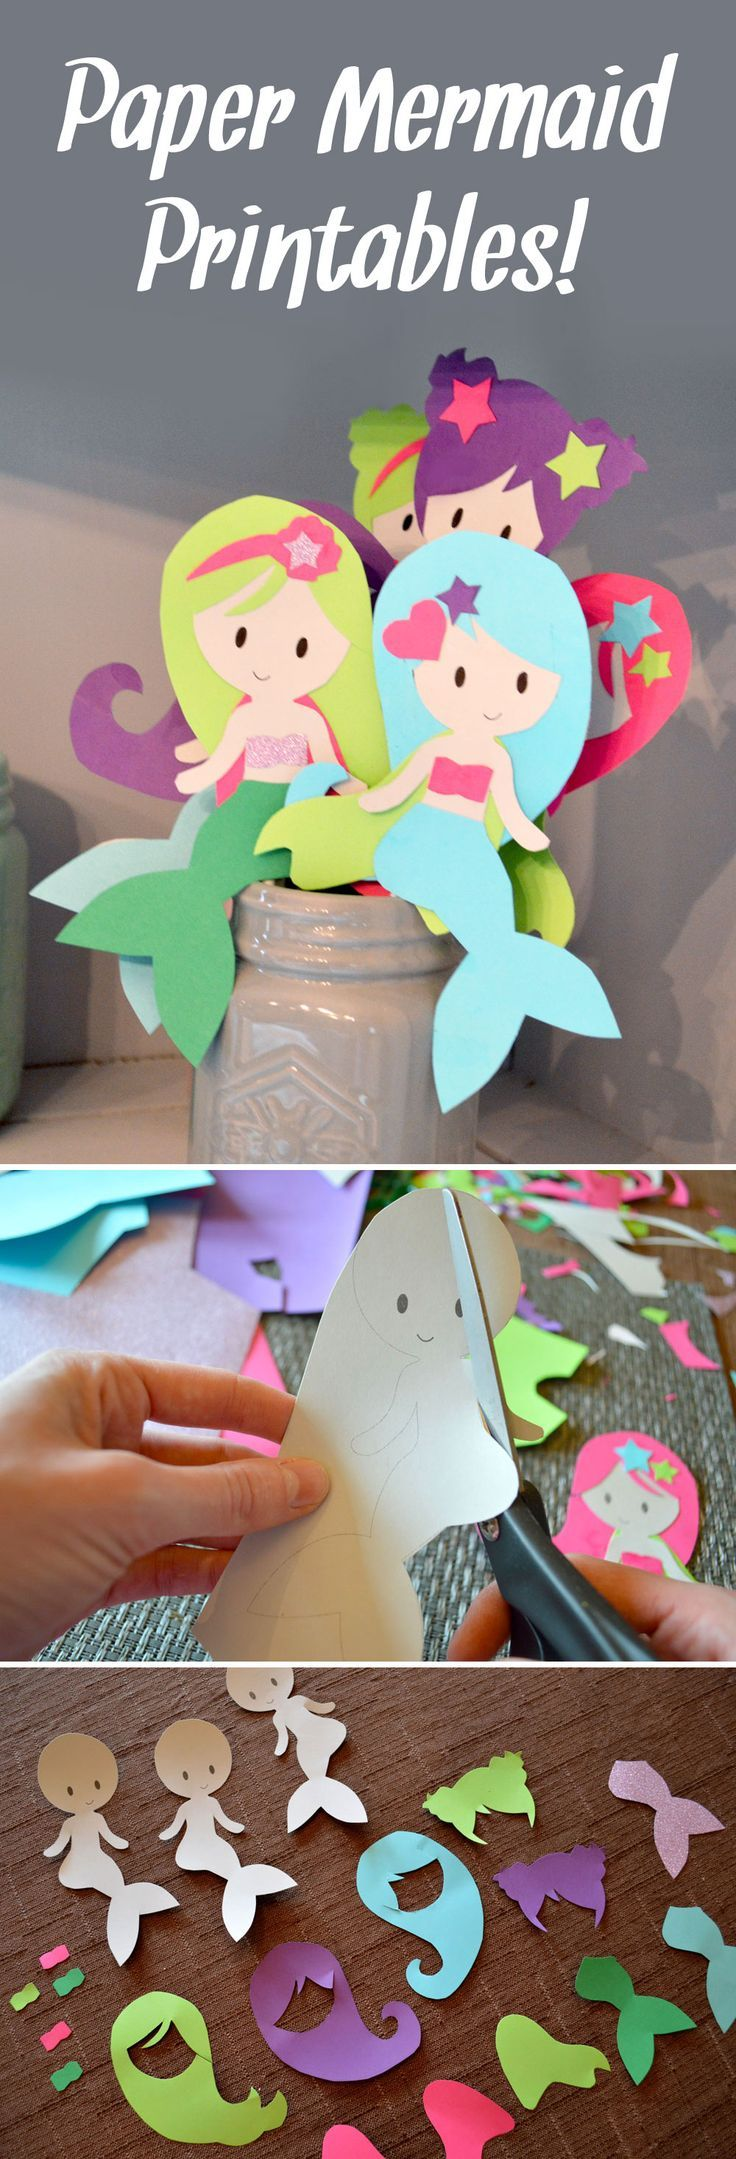 22++ Easy diy crafts for kids ideas